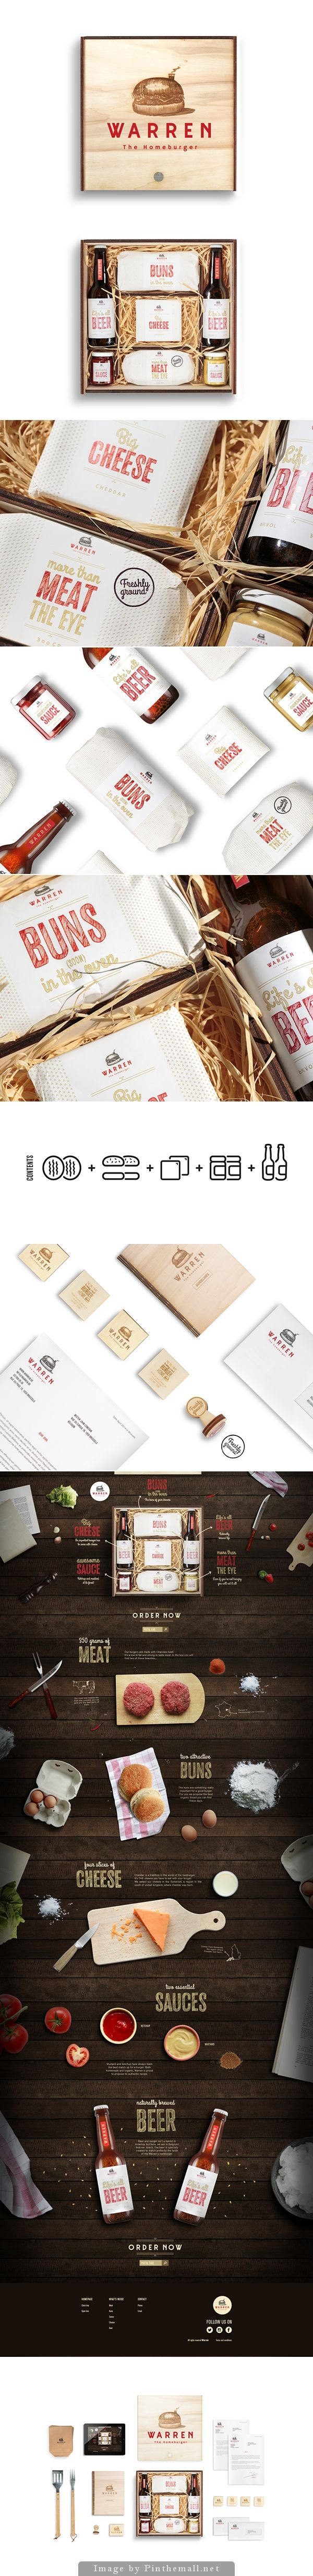 It's hamburgers for lunch after seeing this creative Warren: The Homeburger #packaging by Adrian Duchateau on Behance curated by Packaging Diva PD